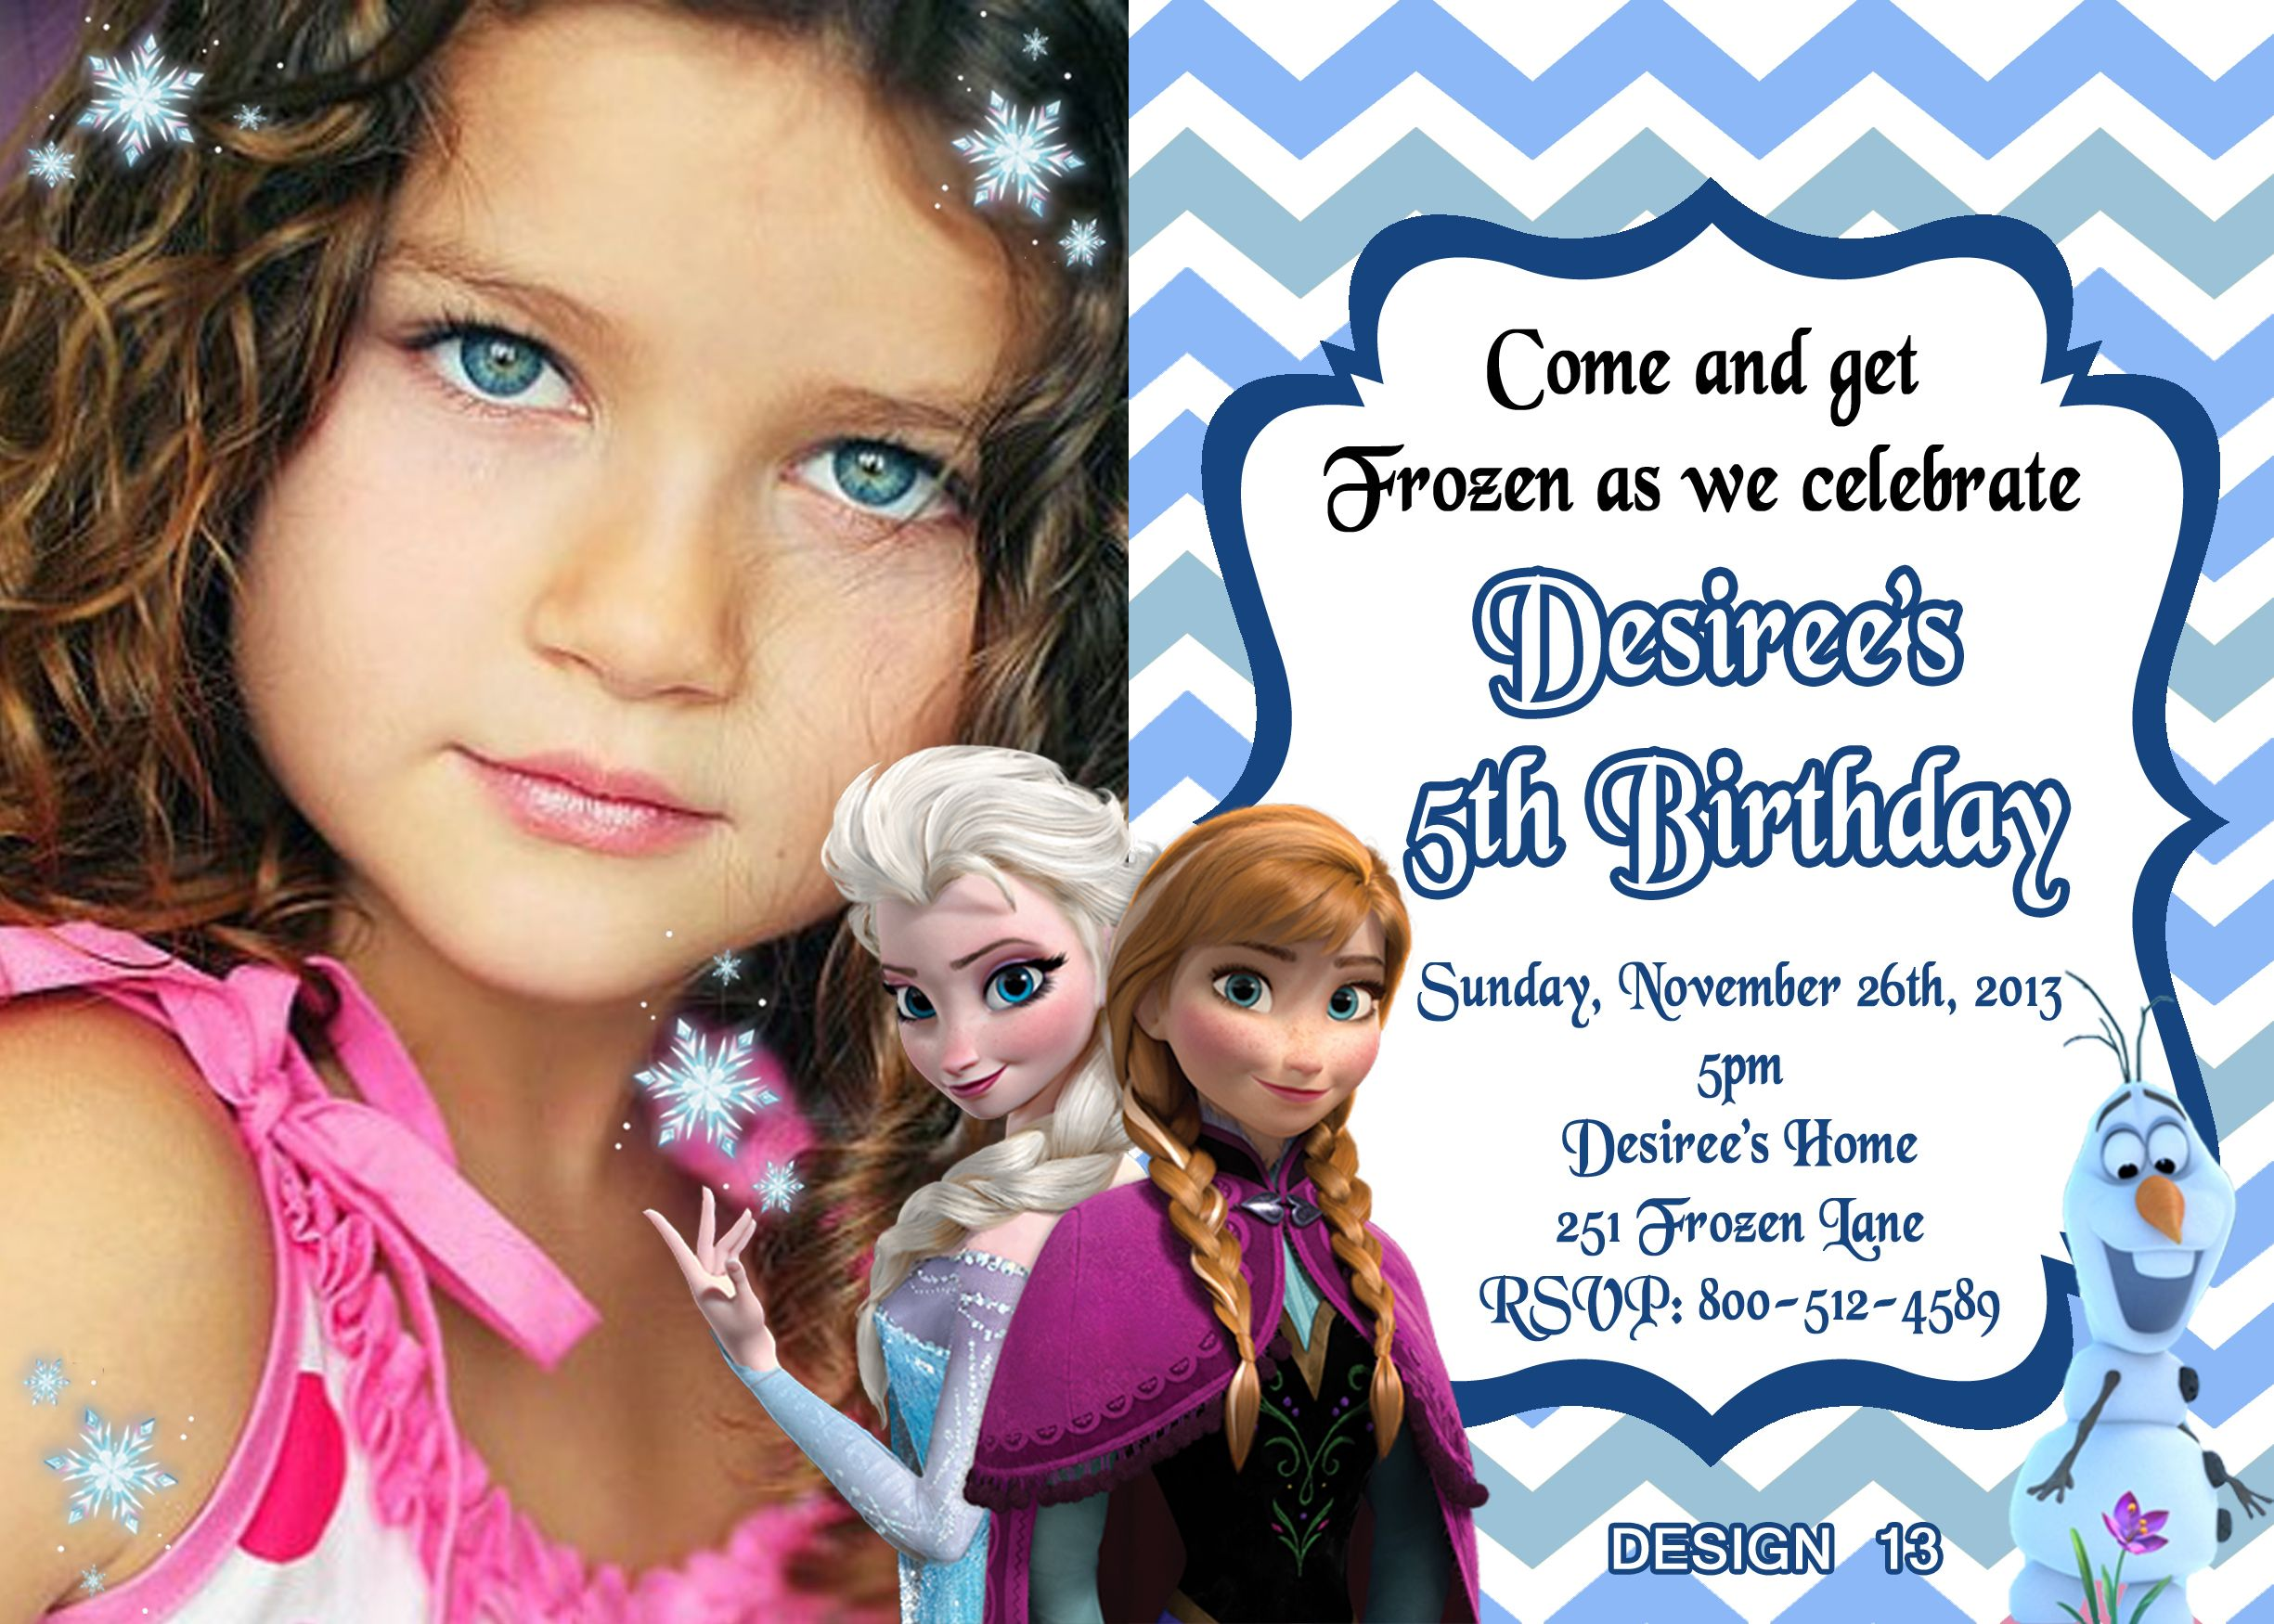 Frozen Movie Chevron Birthday Invitations $8.99 available at www.partyexpressinvitations.com SAME DAY SERVICE